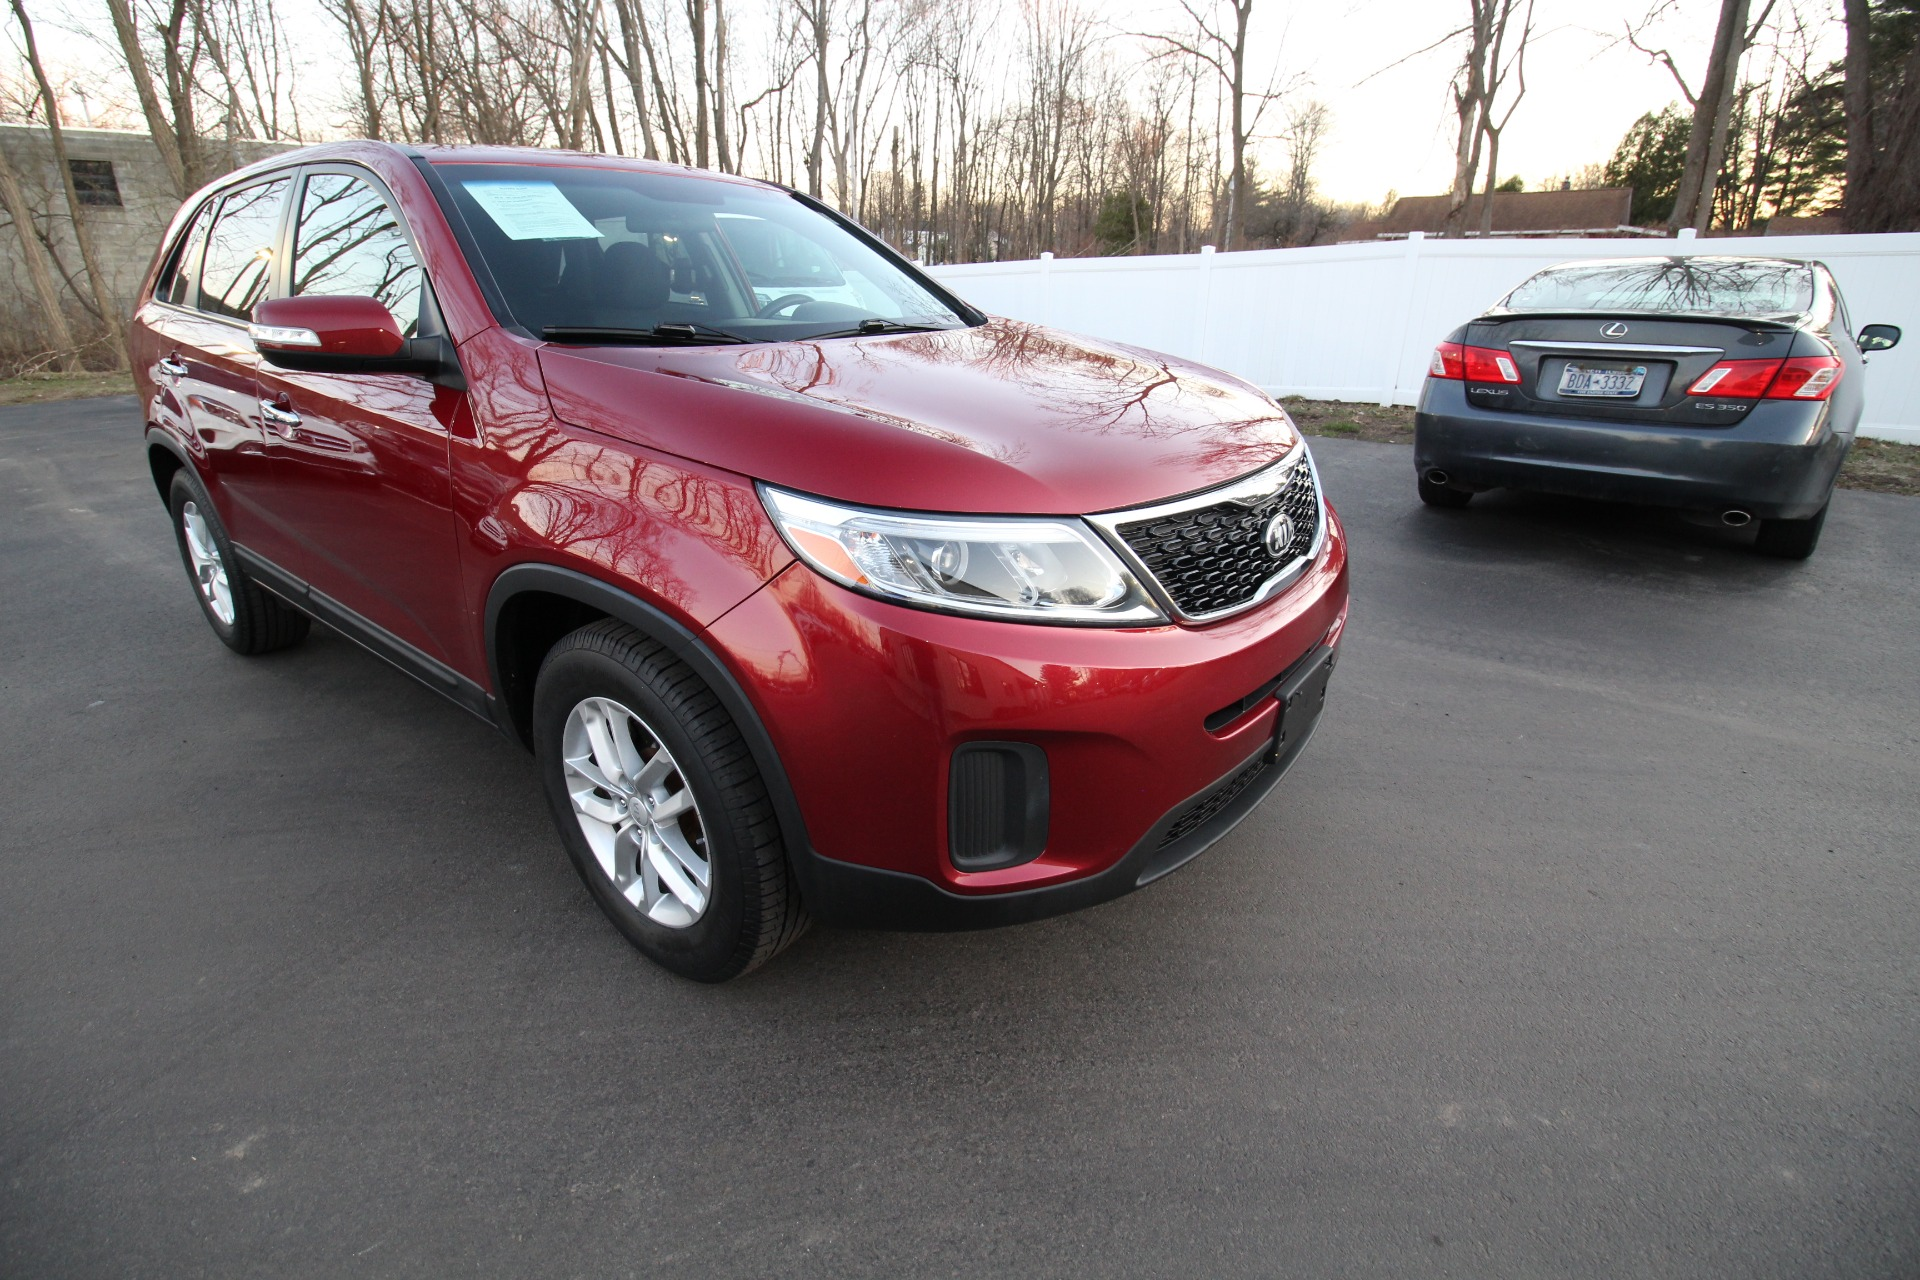 Used 2014 Kia Sorento LX 2WD VERY CLEAN LOW MILES | Albany, NY